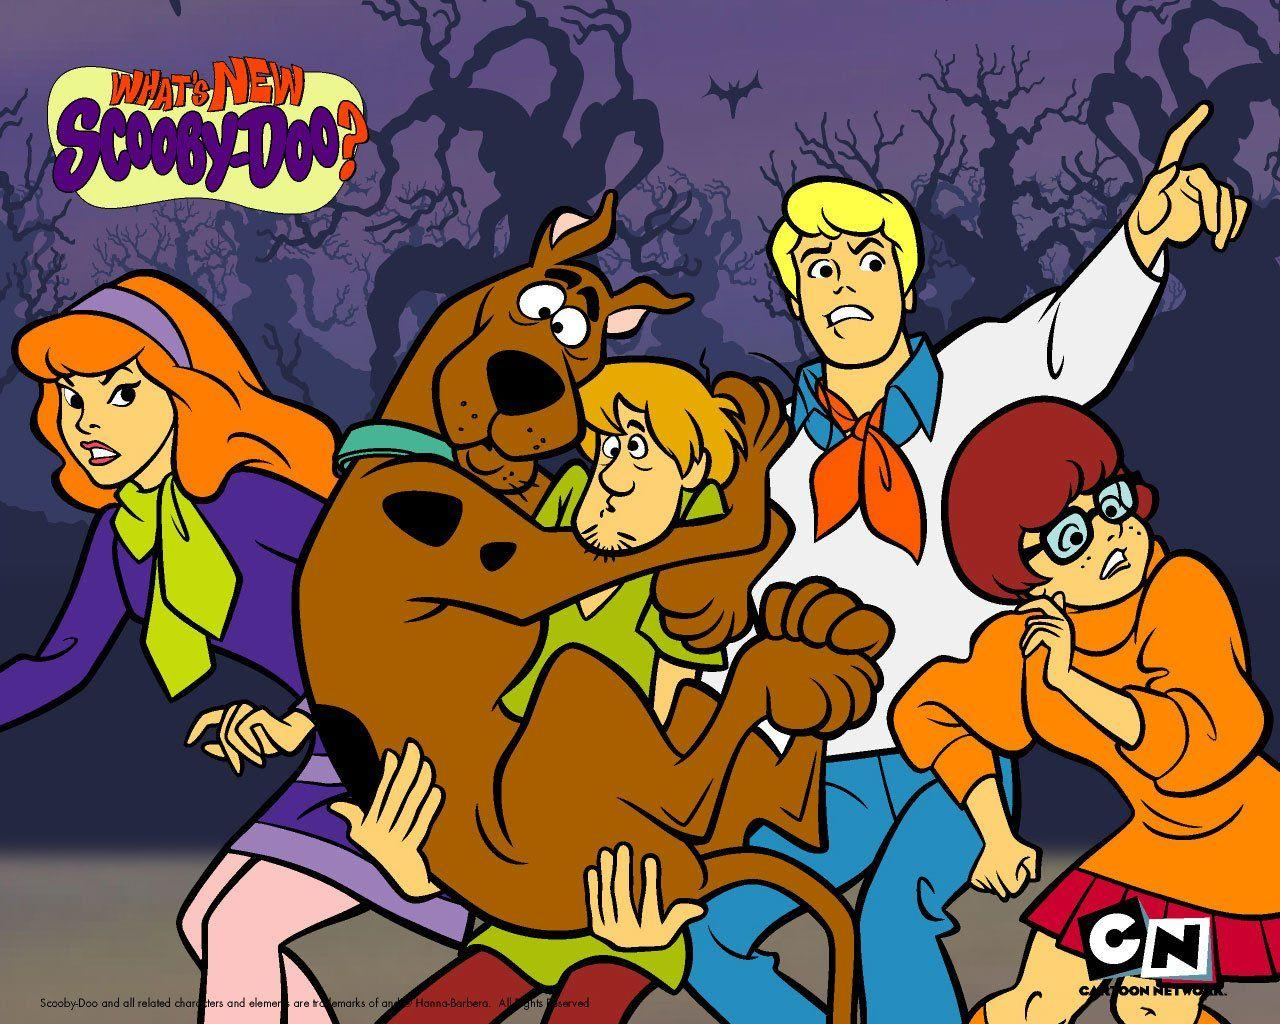 49 Scooby